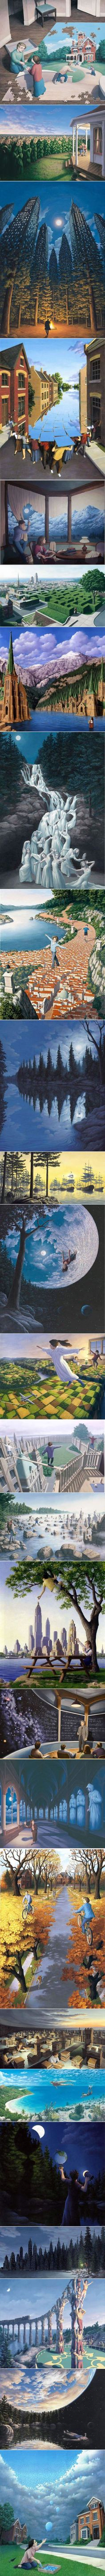 """Surreal paintings """"Imagine A World"""" by Rob Gonsalves"""